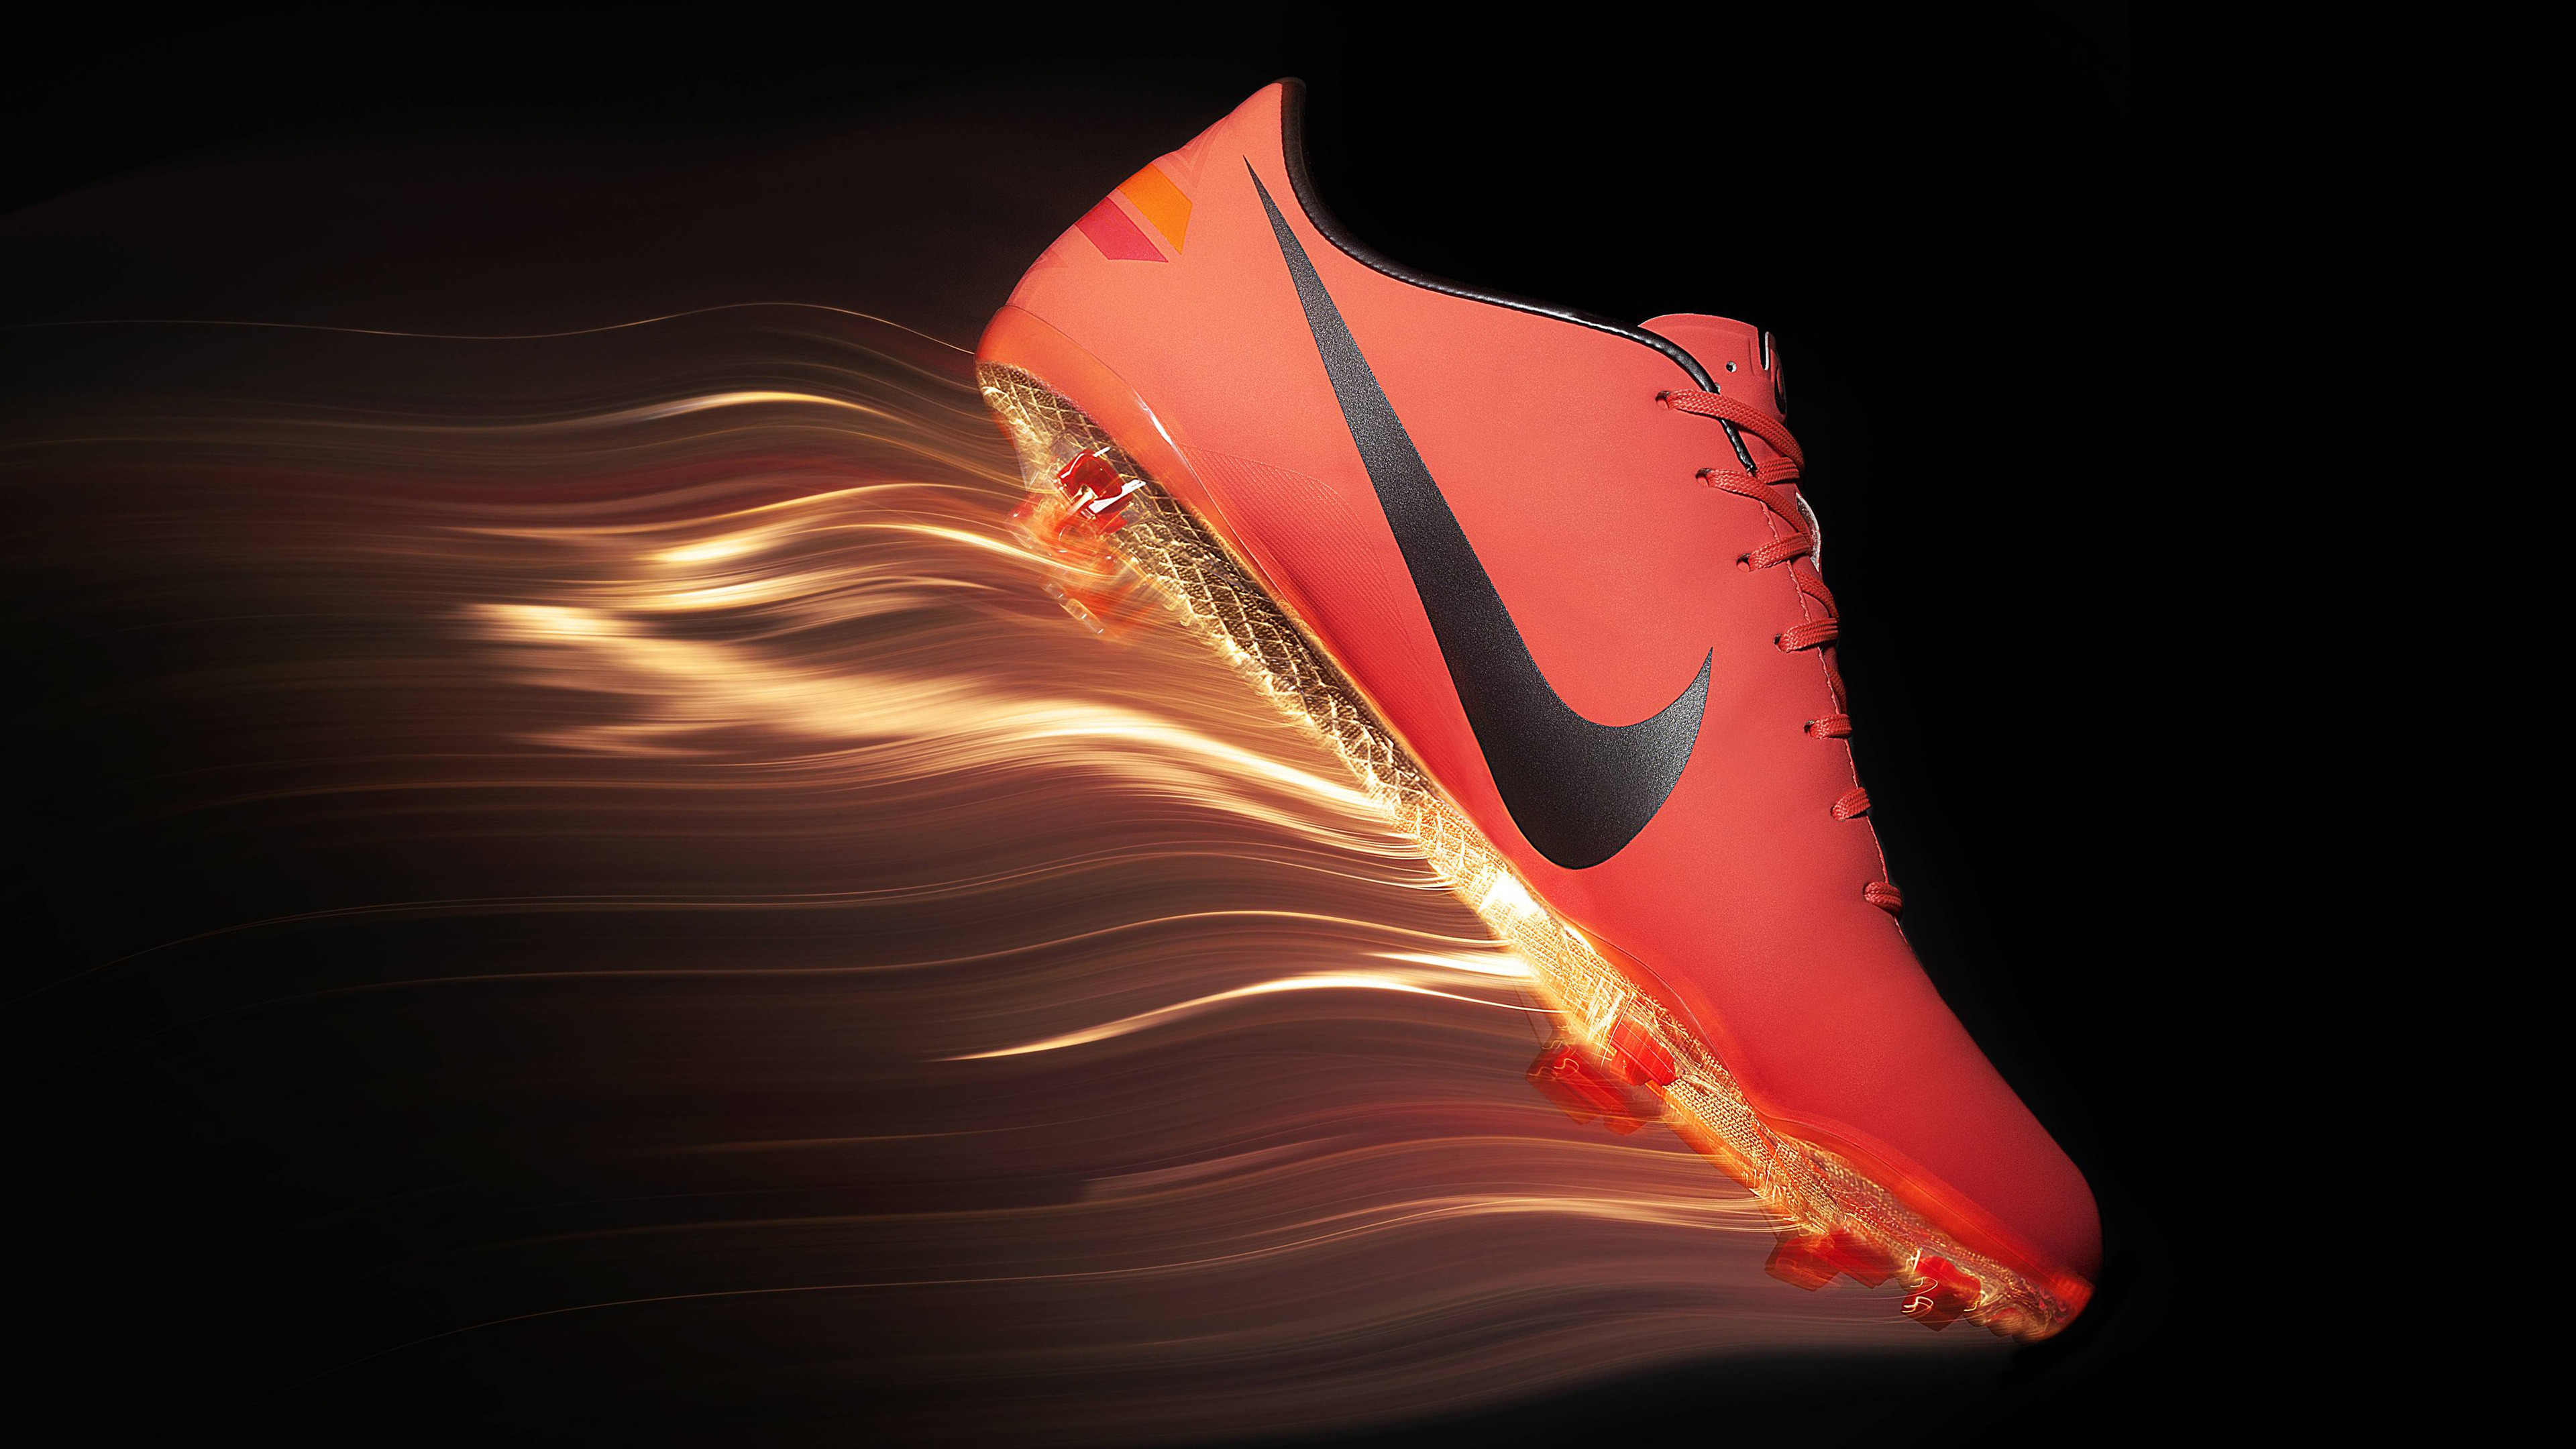 Nike Basketball Wallpaper For Girls: Basketball Shoes Wallpapers (70+ Images